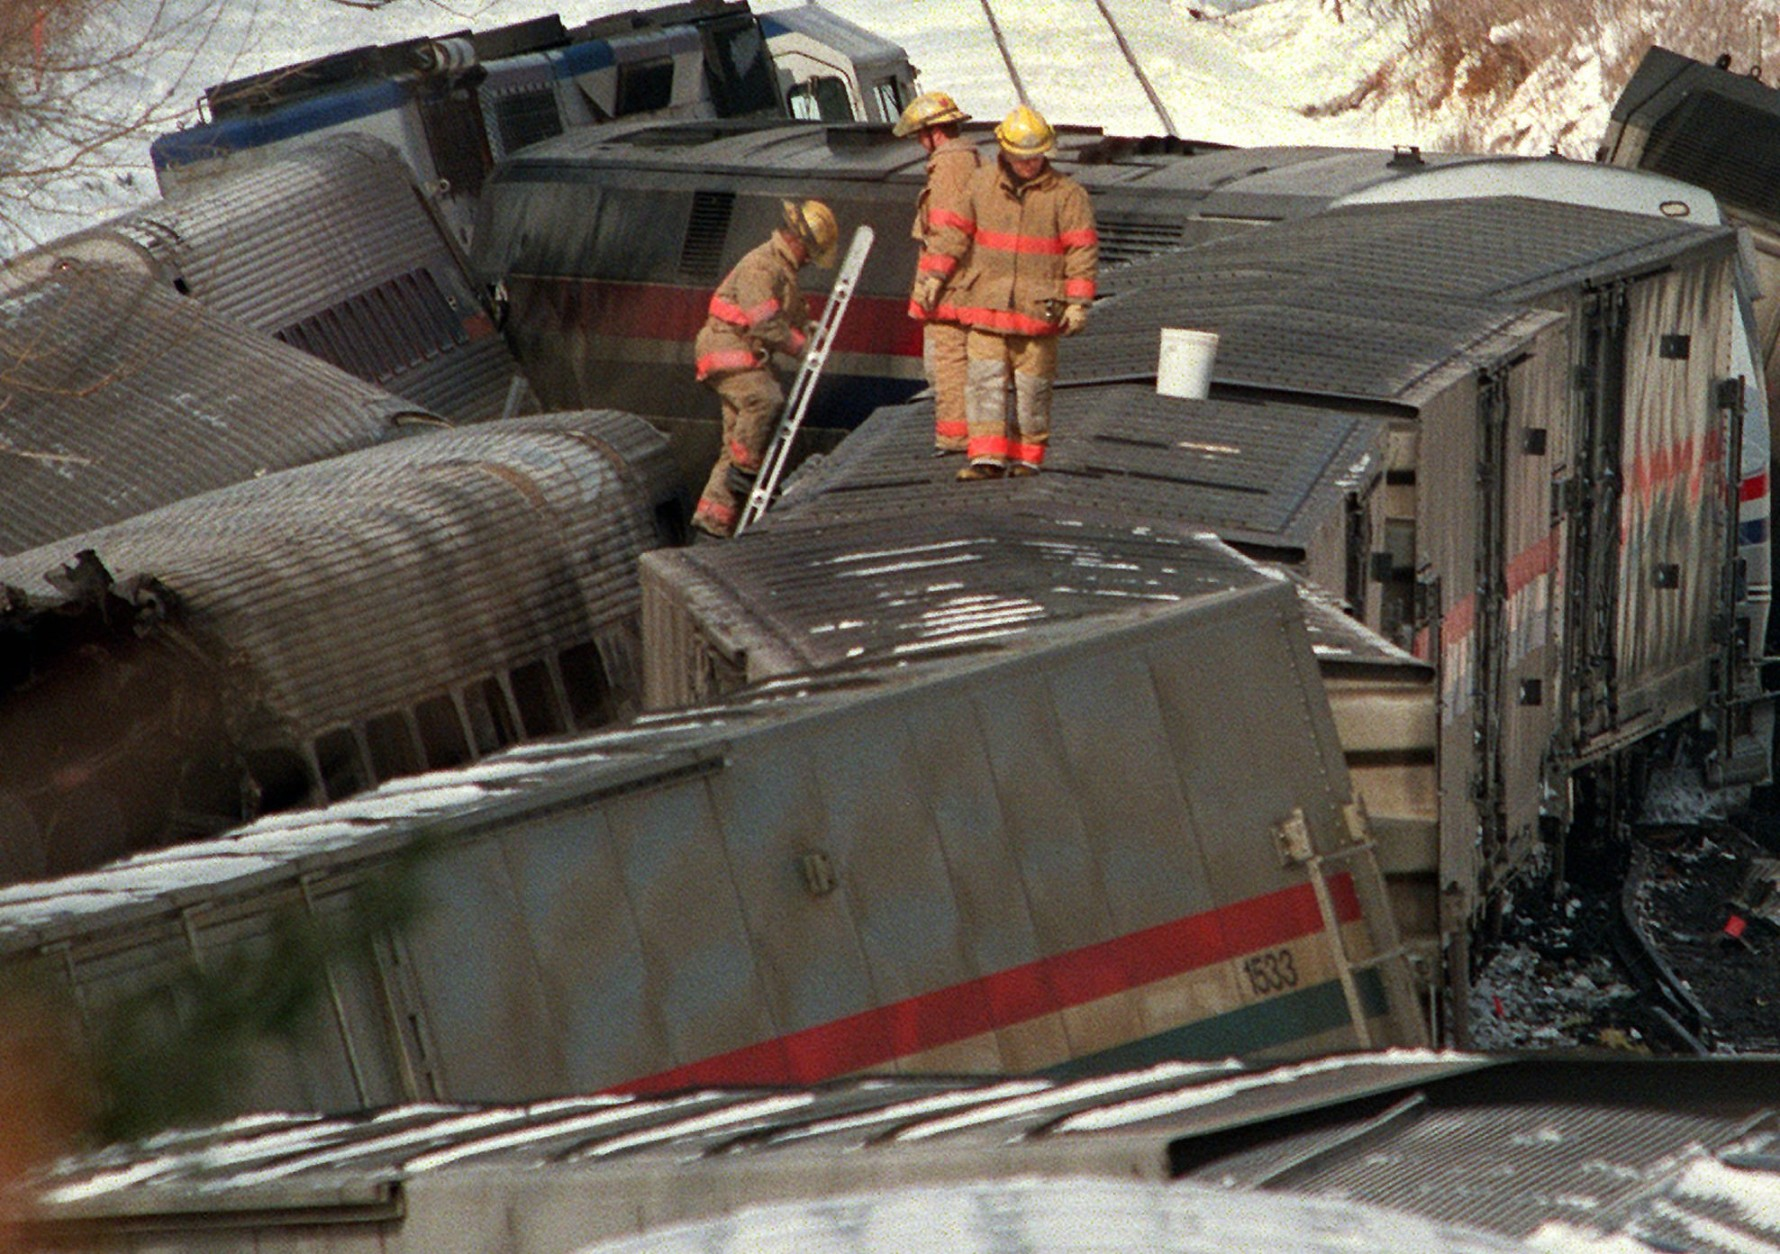 Firemen climb through the wreckage of the burned MARC commuter train in Silver Spring, Md. Saturday Feb. 17, 1996 that was hit by  an Amtrak train  Friday evening. At least 11 passengers on the commuter train were killed.   (AP Photo/Ruth Fremson)